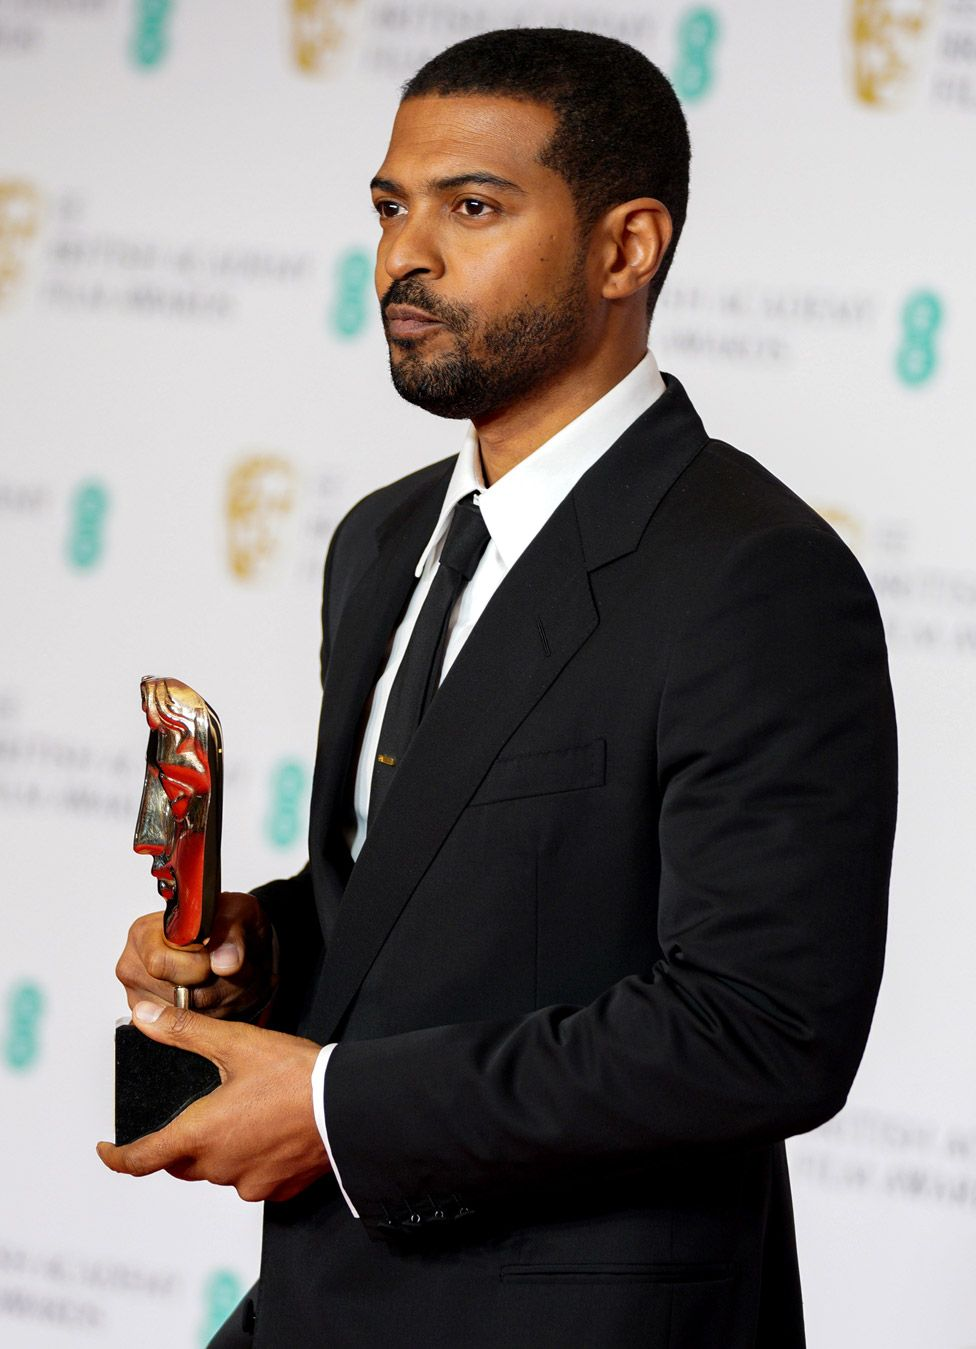 Kidulthood, Bulletproof and Doctor Who actor Noel Clarke was also honoured with the outstanding British contribution to cinema award on Saturday